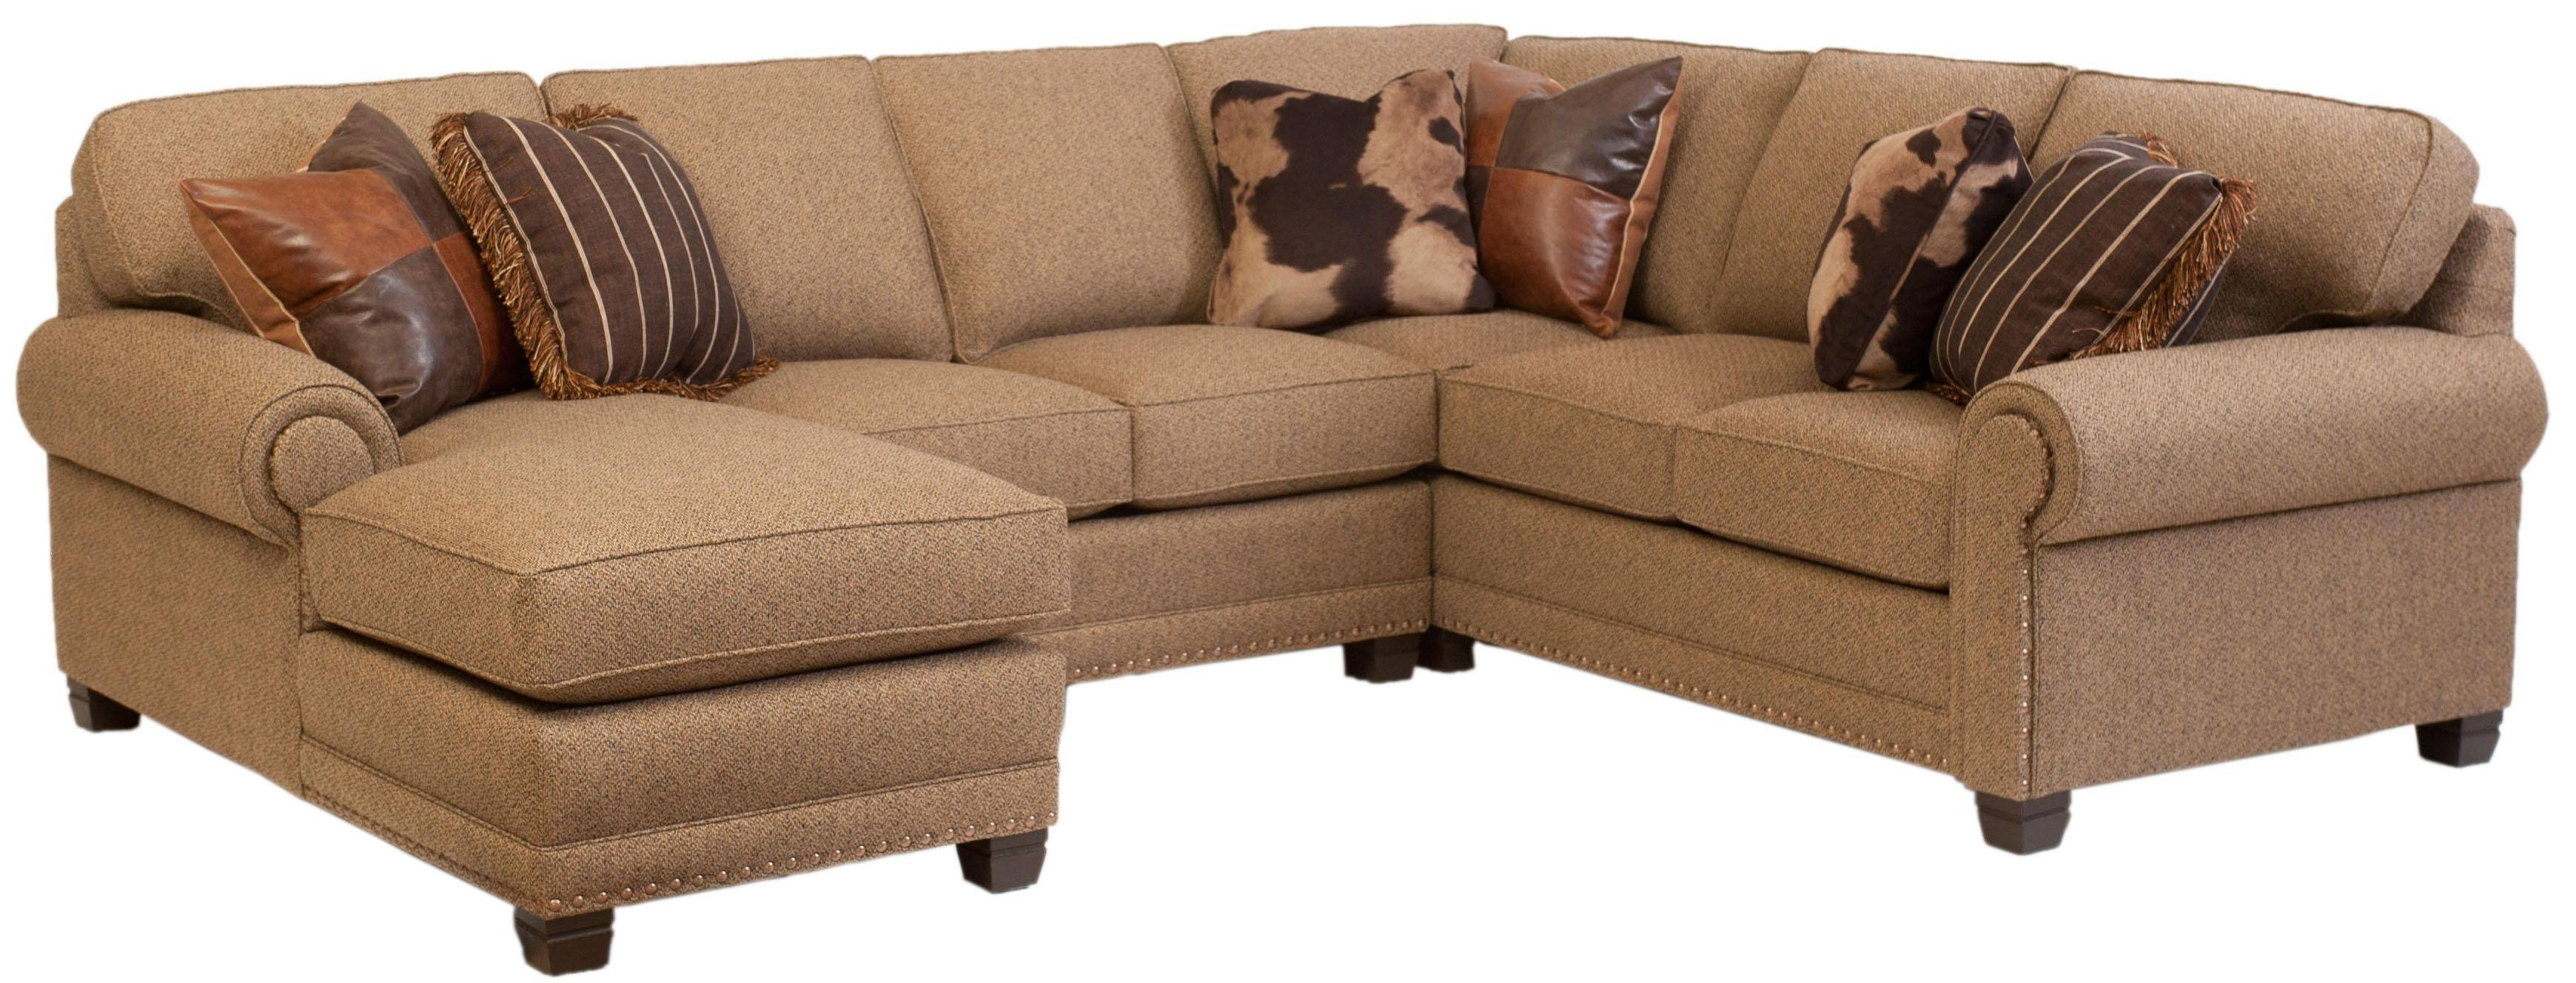 Bradley Sectional Sofa - Leather Sectional Sofa with regard to Bradley Sectional Sofa (Image 12 of 30)